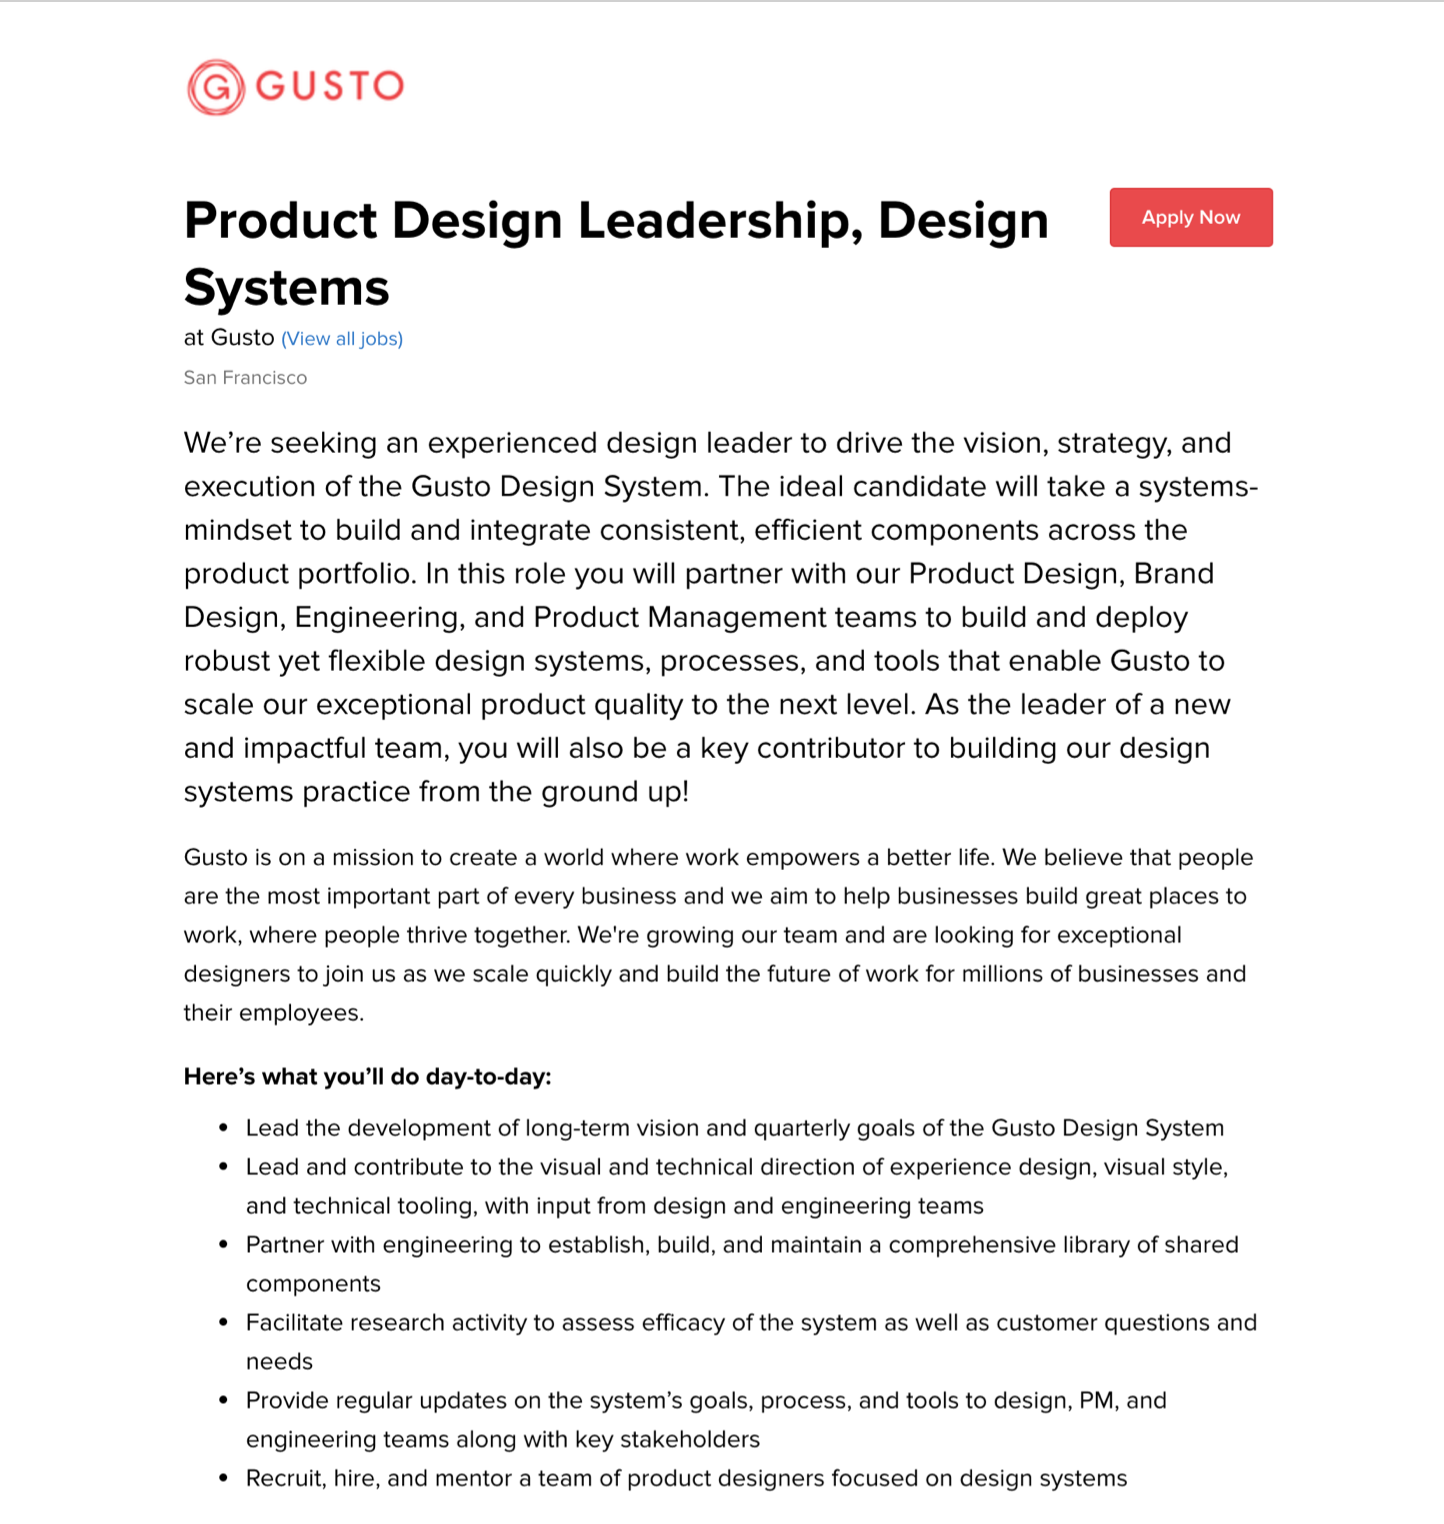 An example of a design systems-focused product design role.